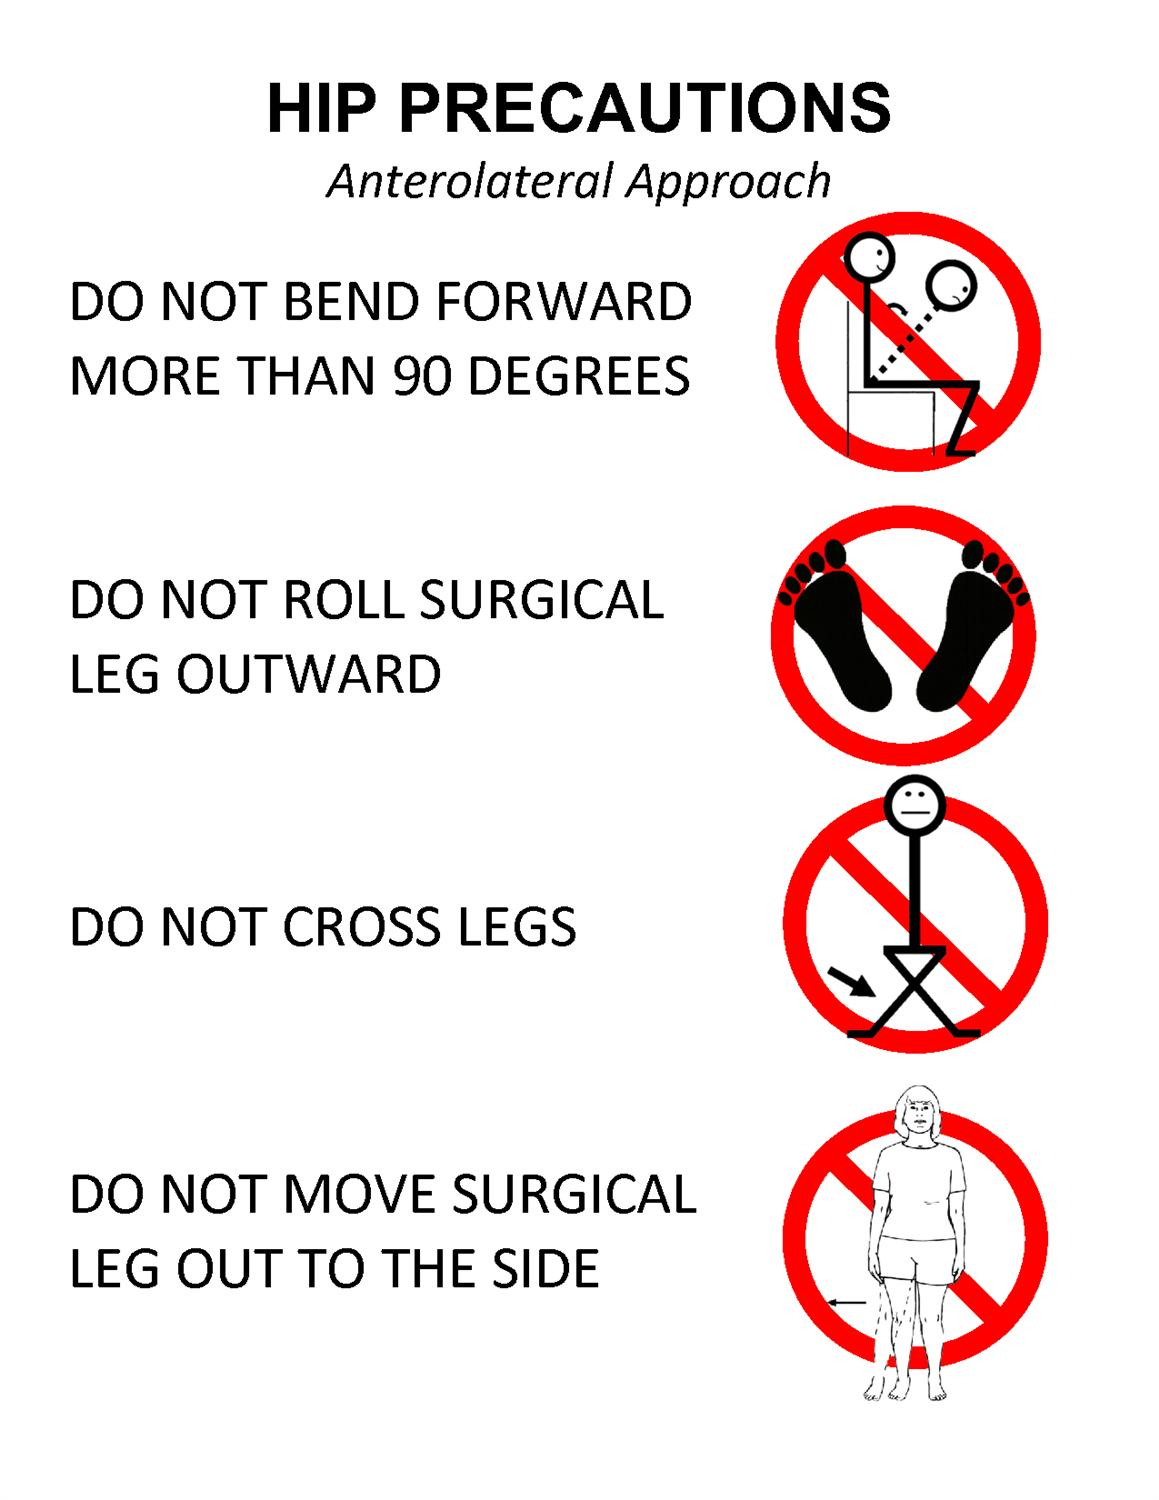 https://upload.orthobullets.com/topic/5036/images/anterolateral_precautions.jpg